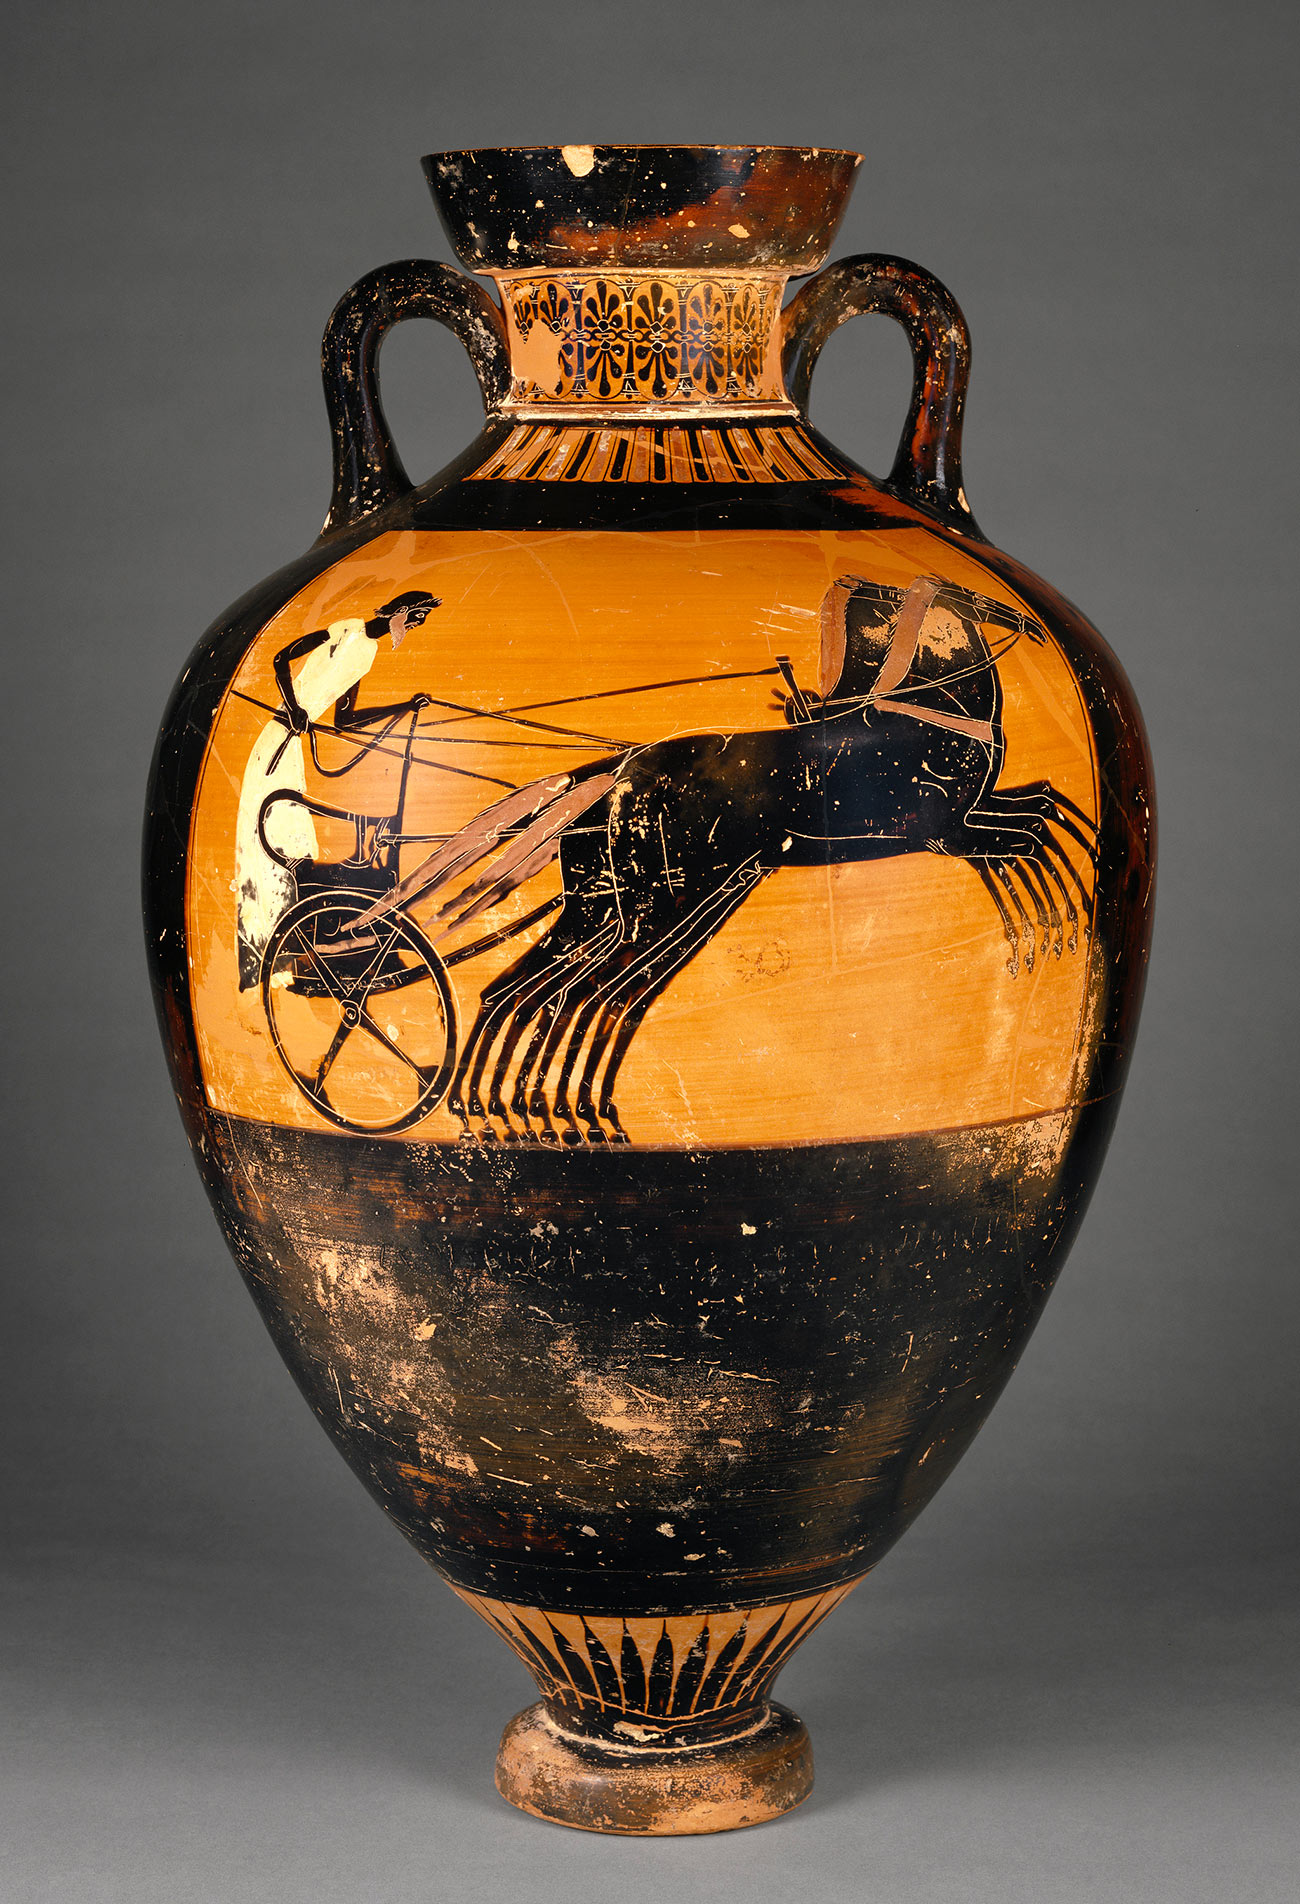 Whats New to Explore in the Reinstalled Getty Villa